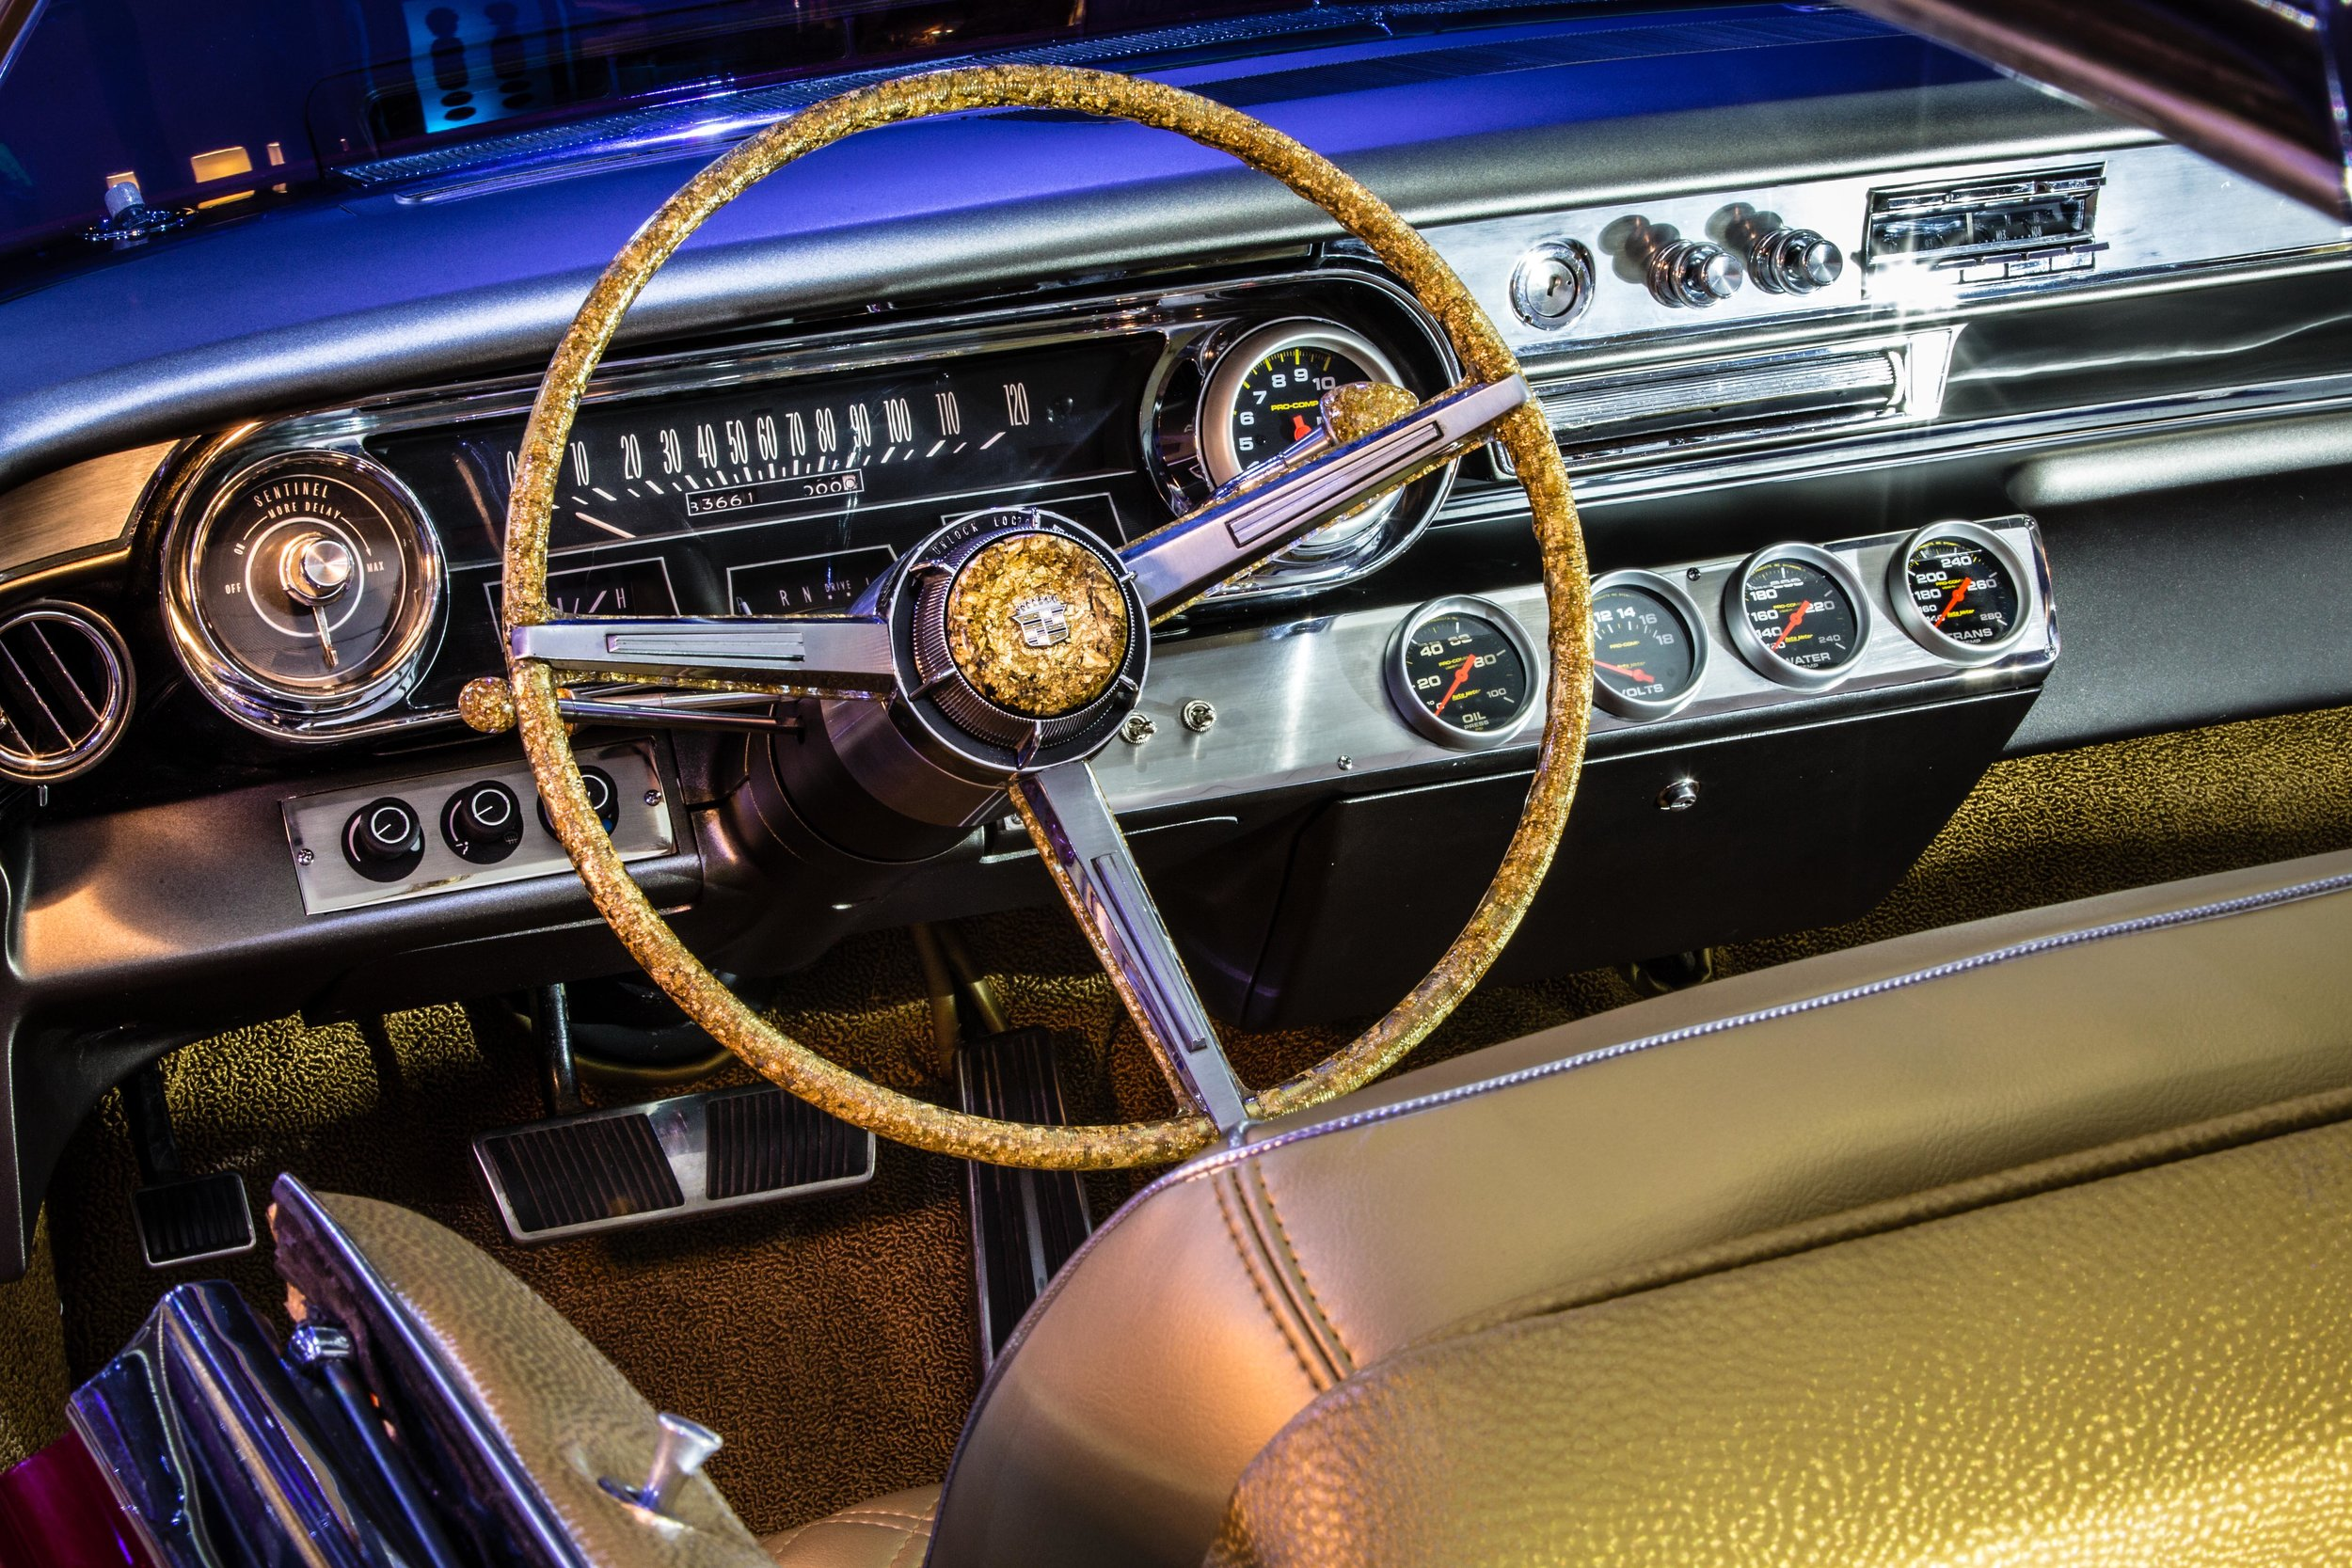 Anaheim Rod and Custom 65 Cadillac Studio Shots (40 of 69).jpg